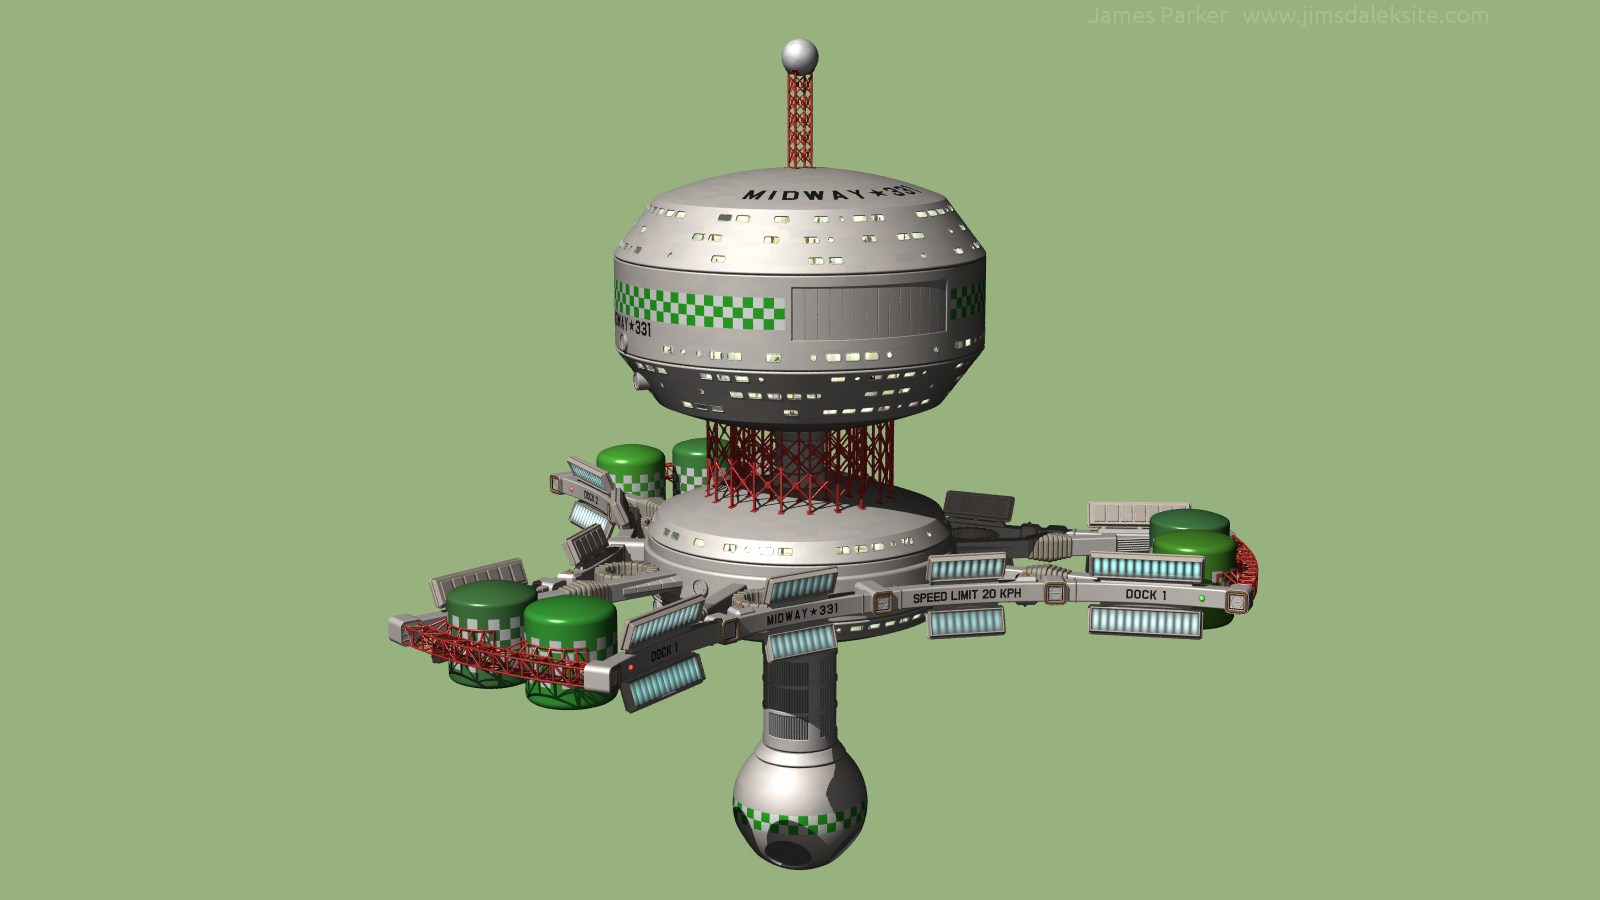 WIP small space station #3 by Jim197